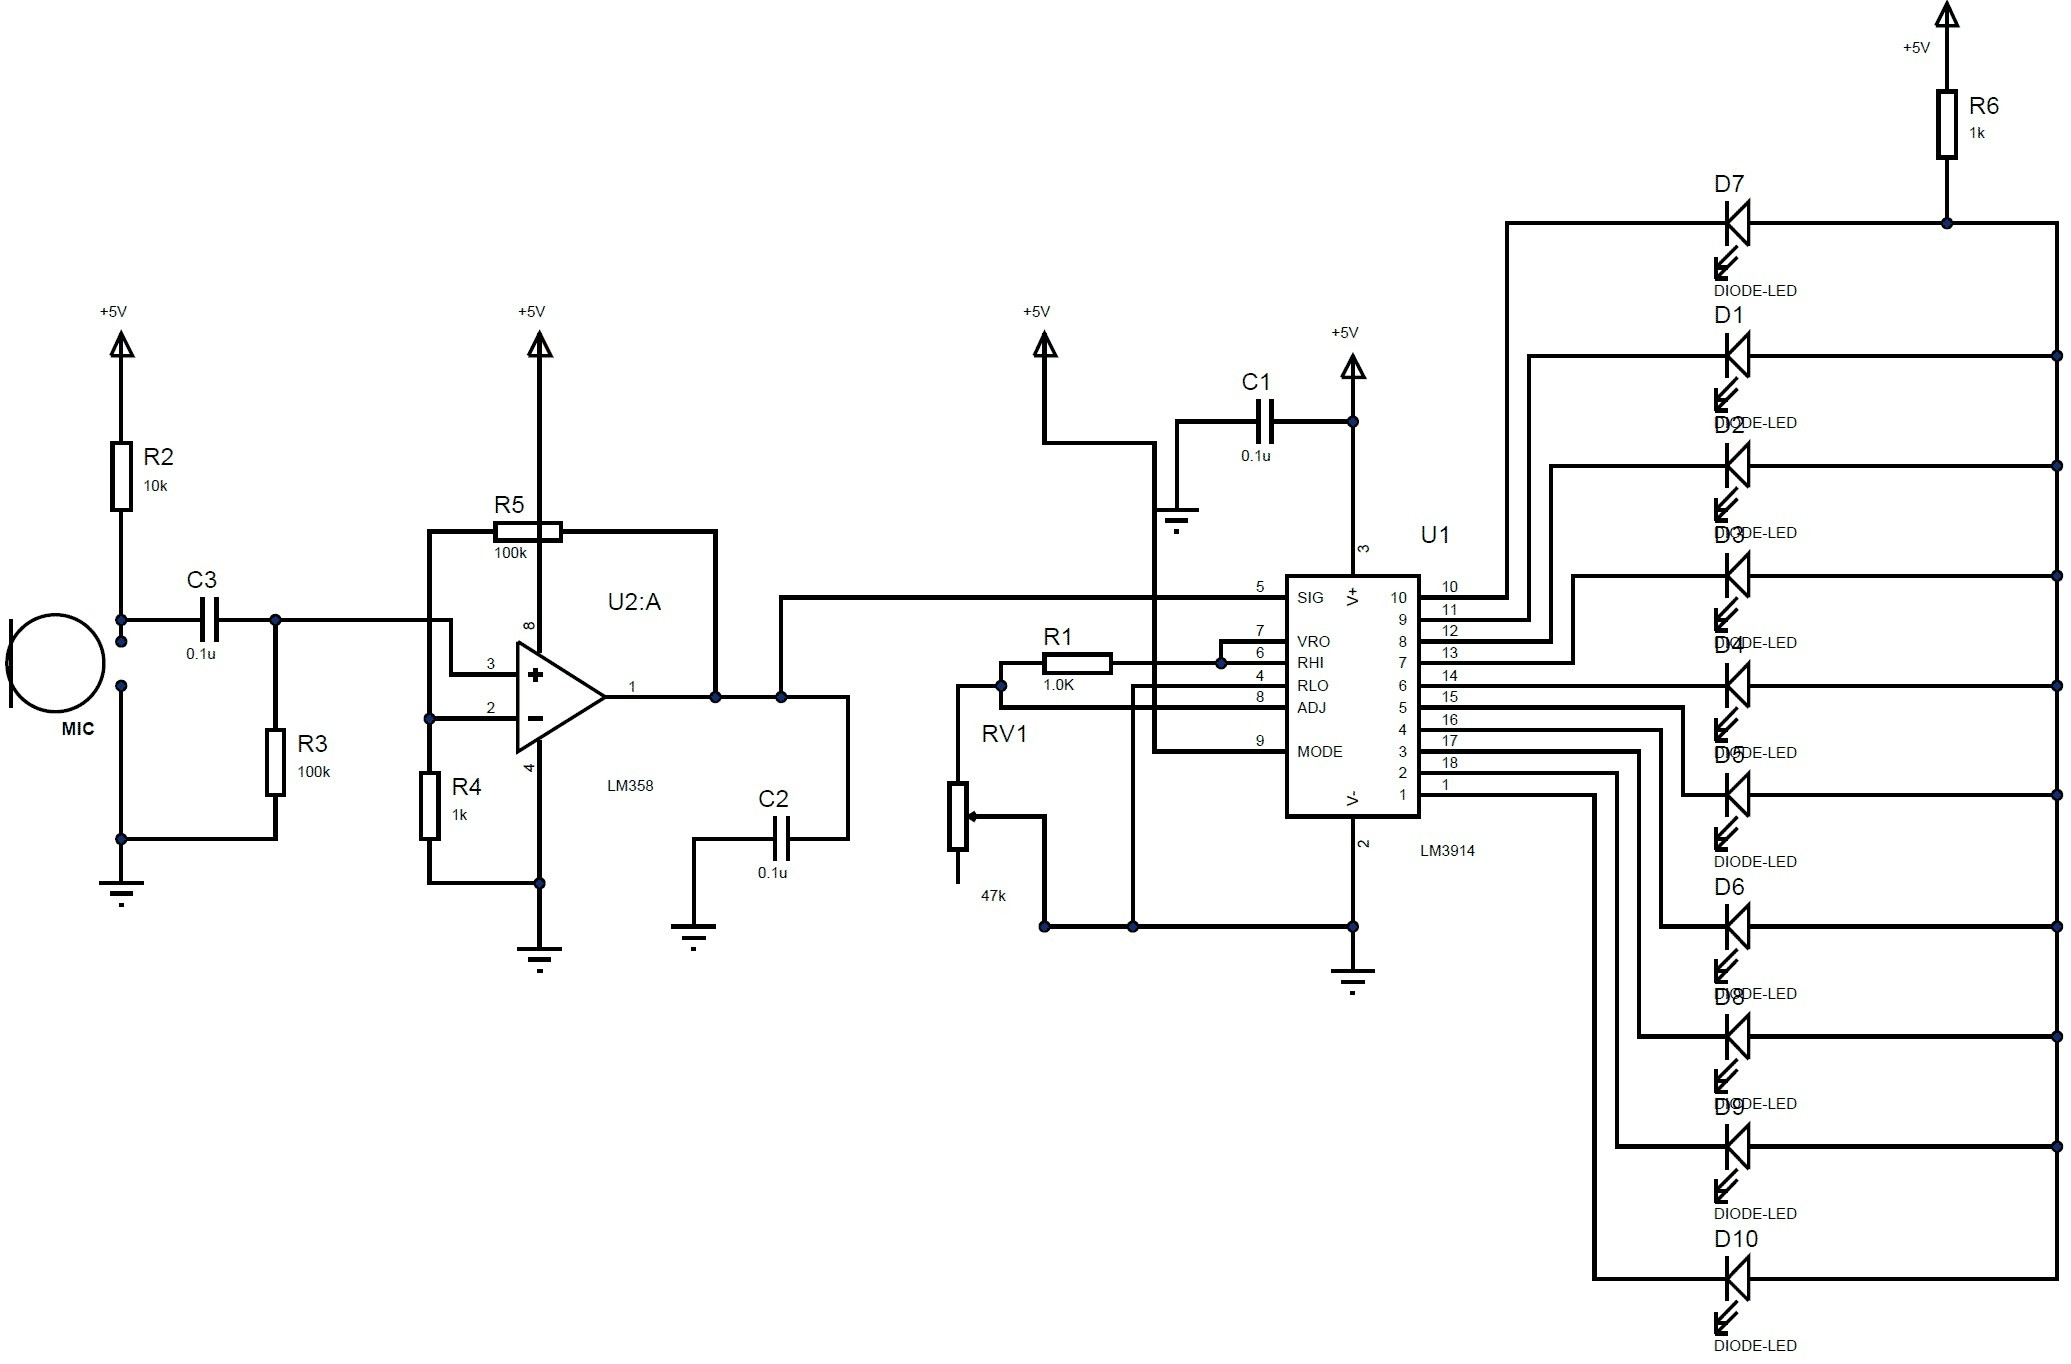 cell Wiring Diagram Inspirational Ponent Series Circuit Diagrams for the Od Lab Resistor Inductor